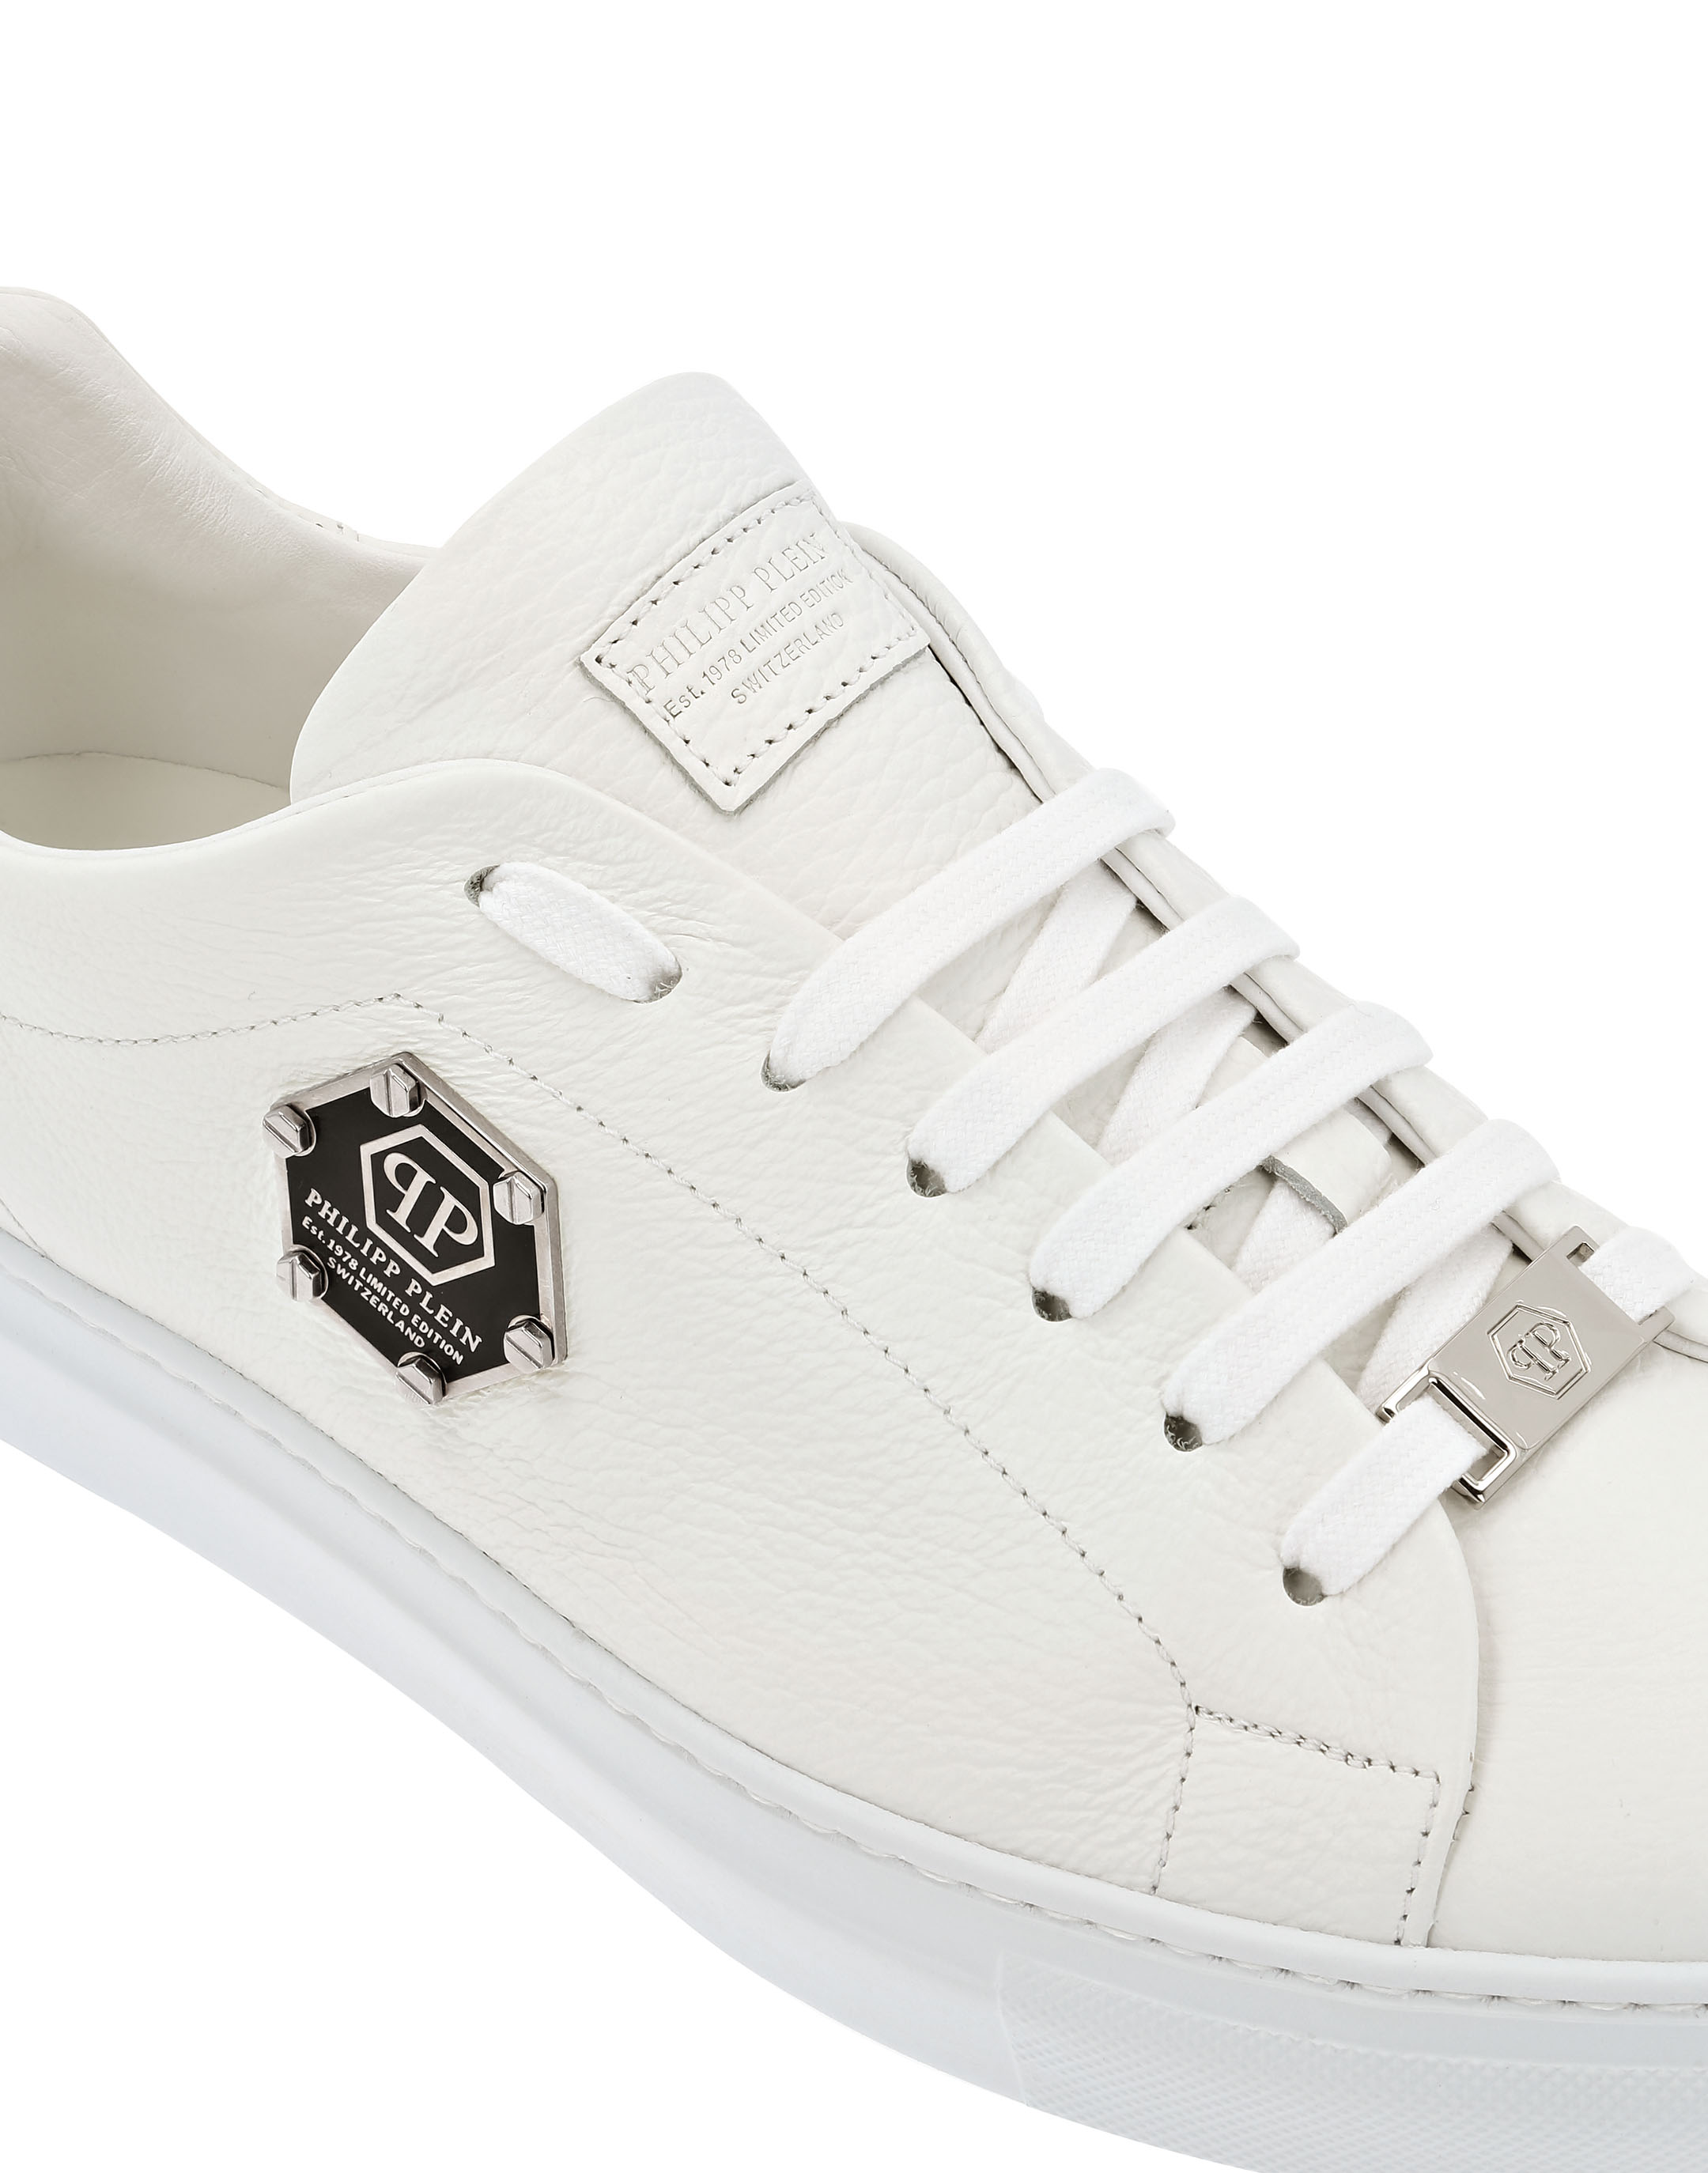 Lo-Top Sneakers   Philipp Plein Outlet